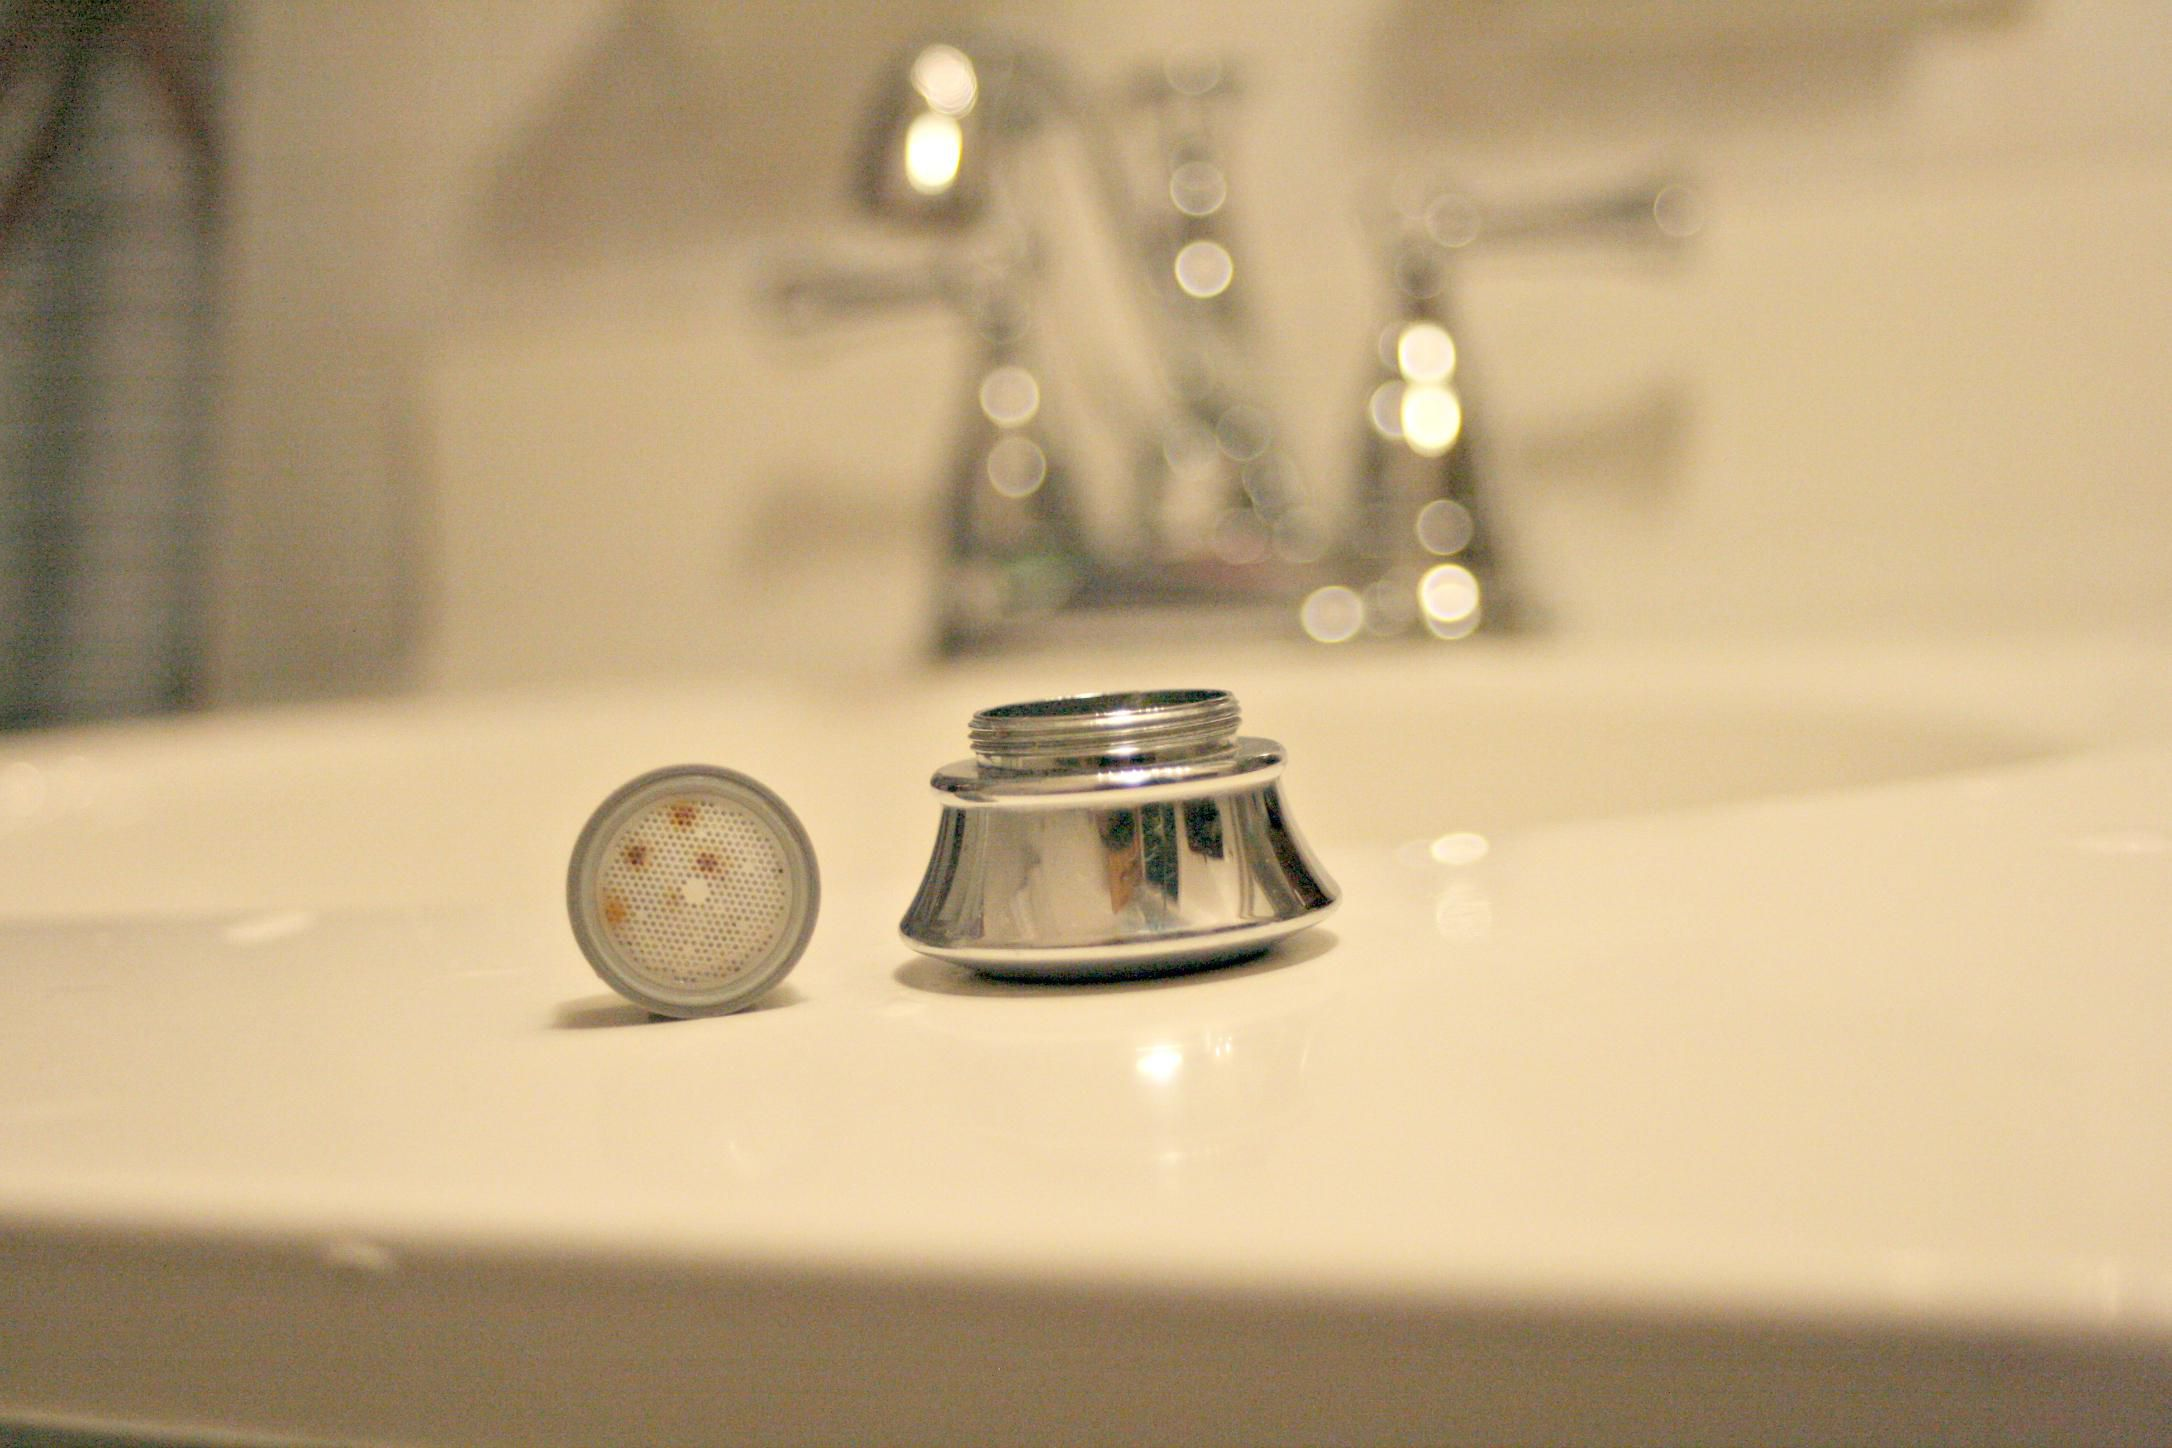 How To Remove A Faucet Aerator